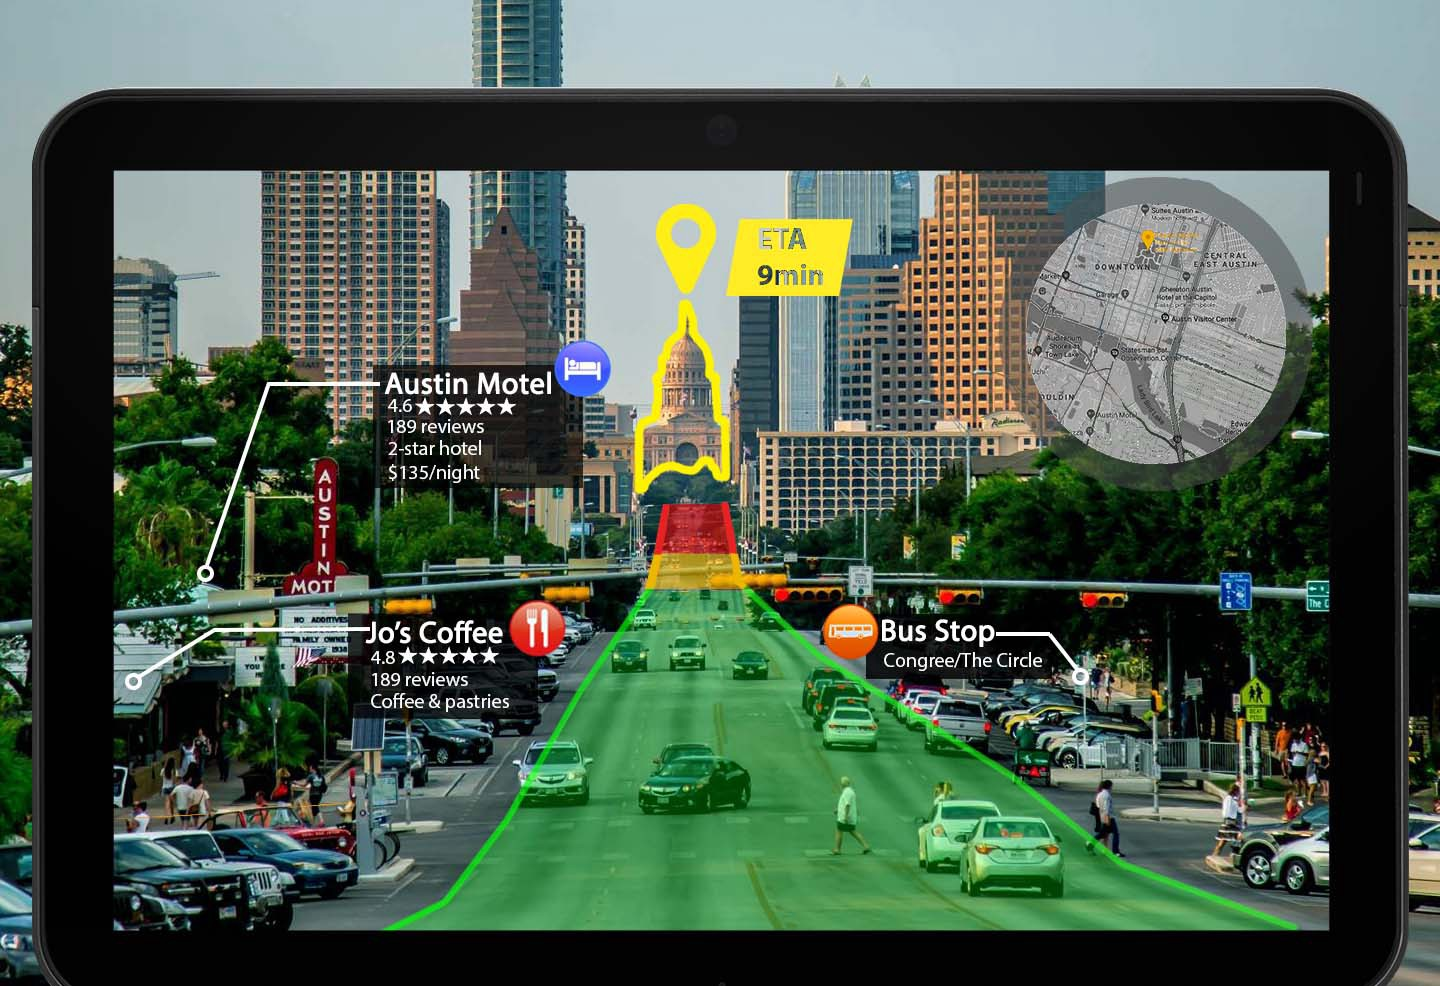 /augmented-reality-ar-app-development-accelerates-as-amazon-apple-google-other-leaders-boldly-1caa9cb7f619 feature image